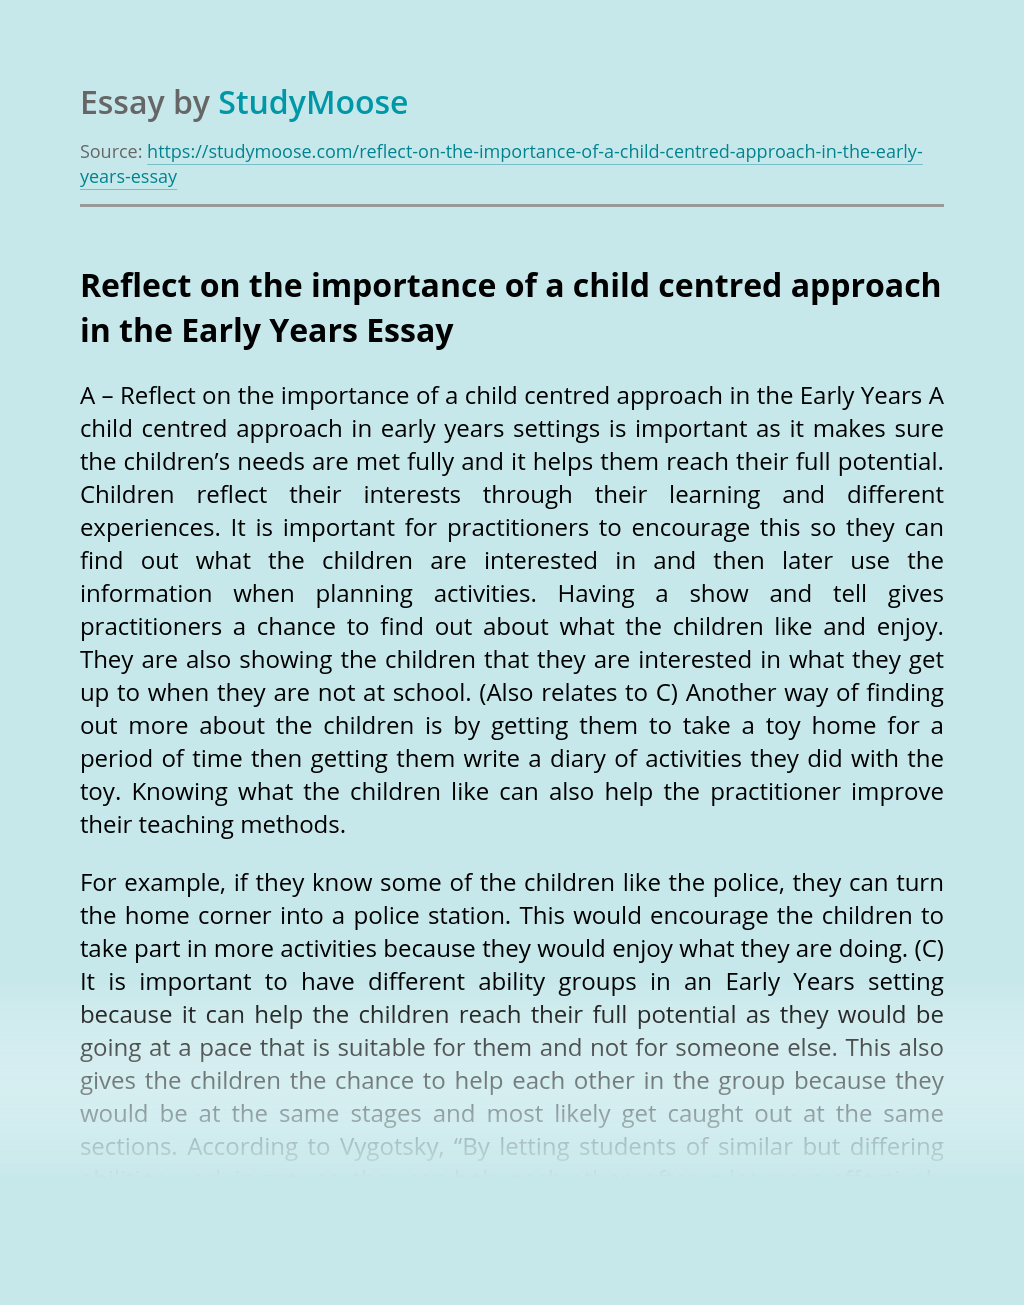 Reflect on the importance of a child centred approach in the Early Years